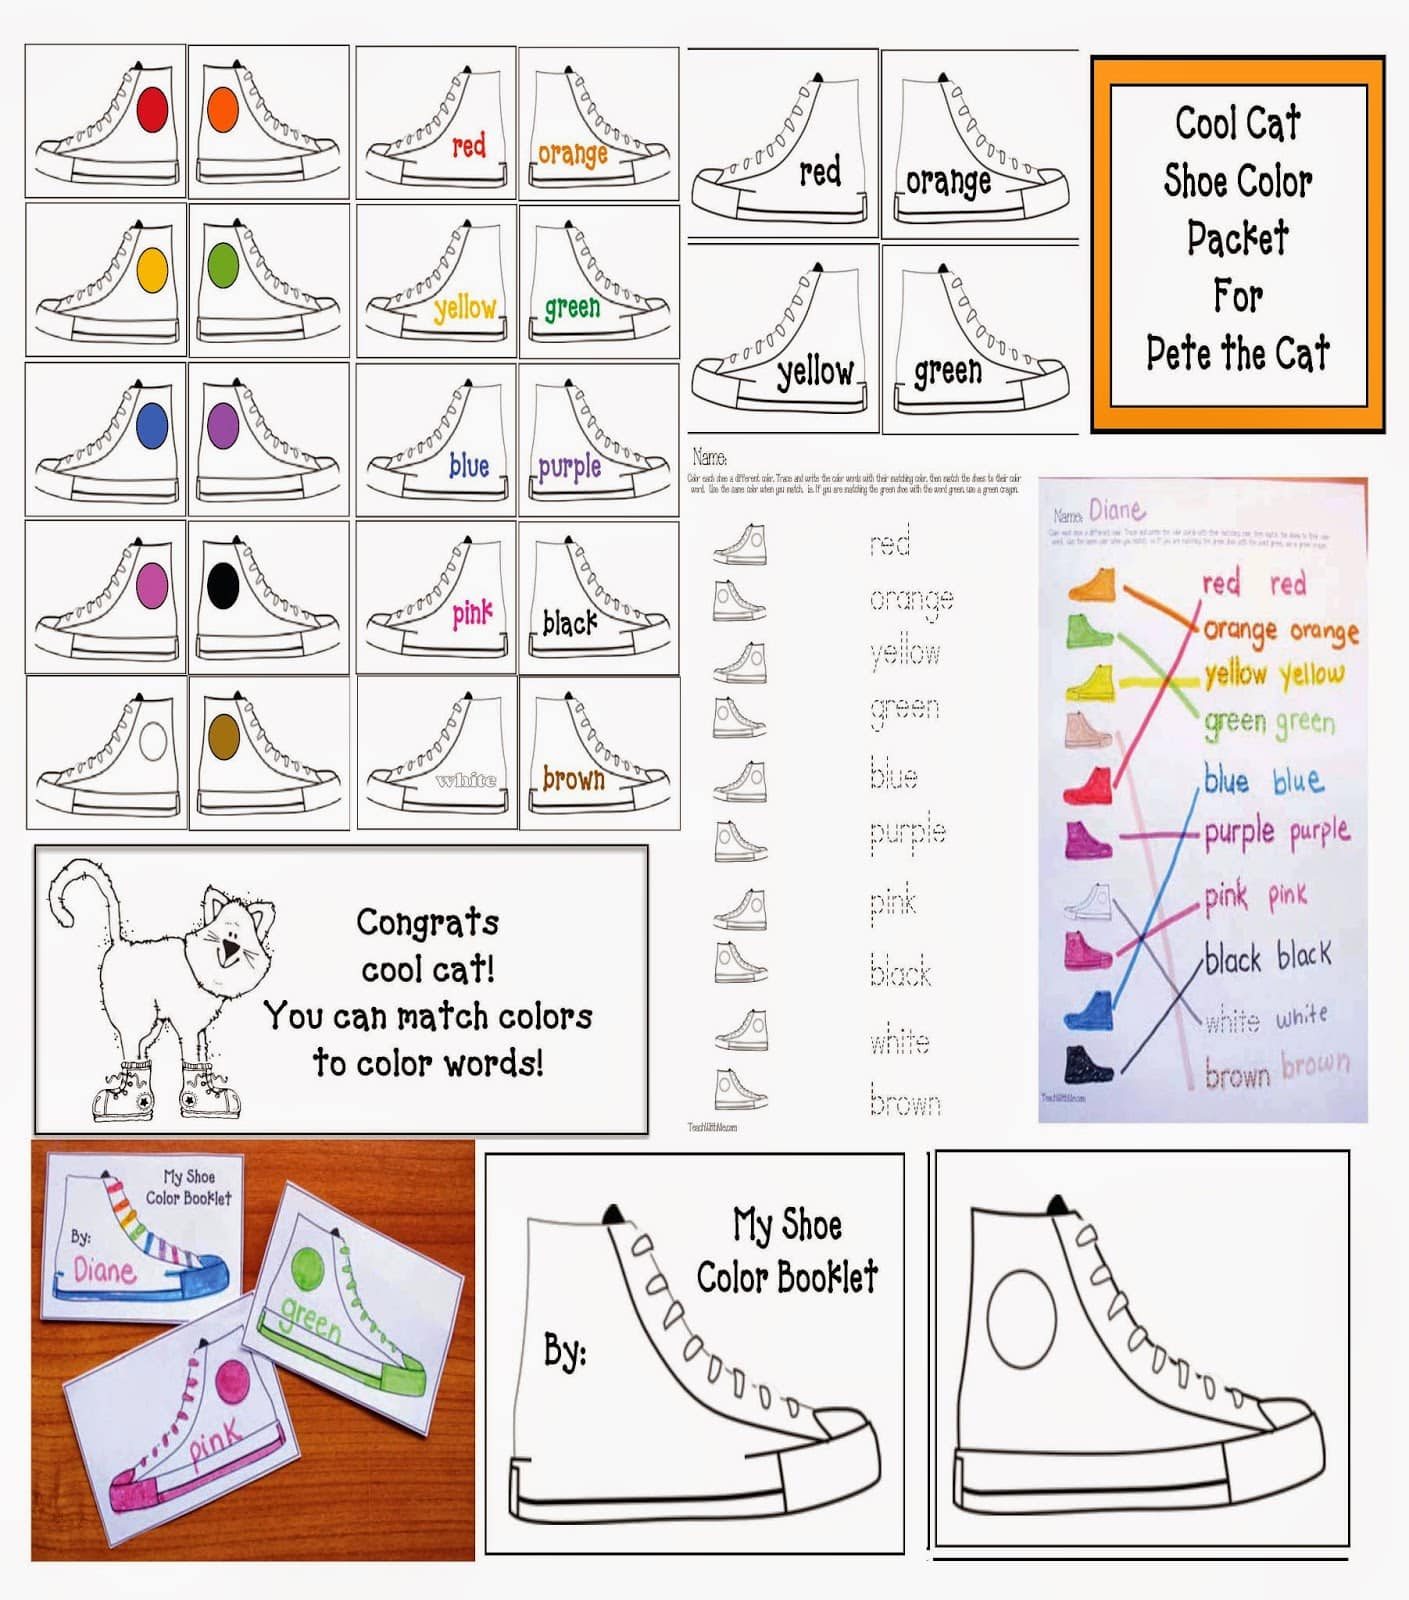 Pete The Cat Activities For I Love My White Shoes